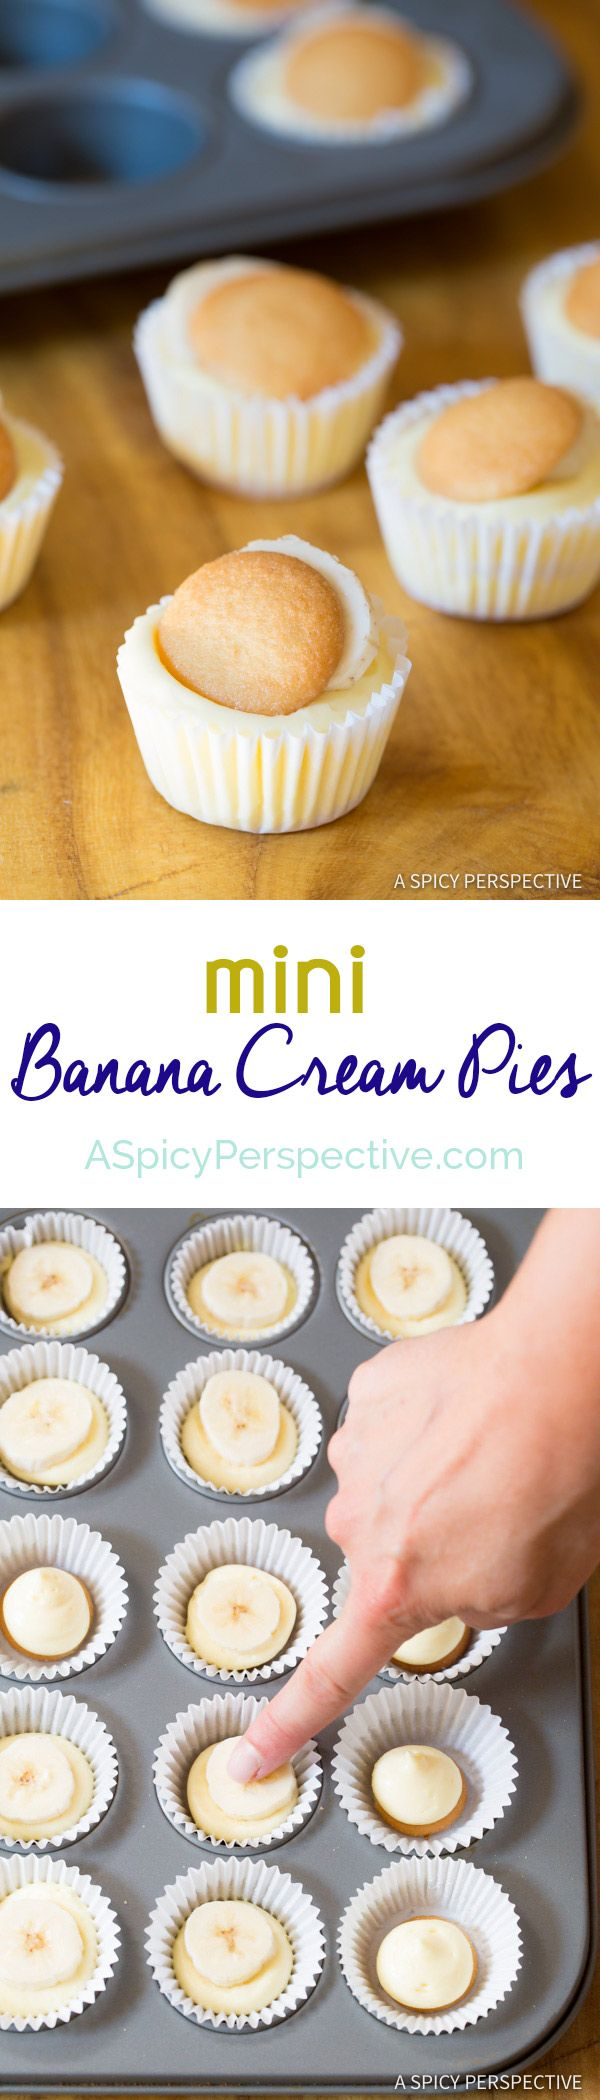 Fun to Make 6-Ingredient Mini Banana Cream Pie Recipe (Banana Pudding Tarts) on ASpicyPerspective.com